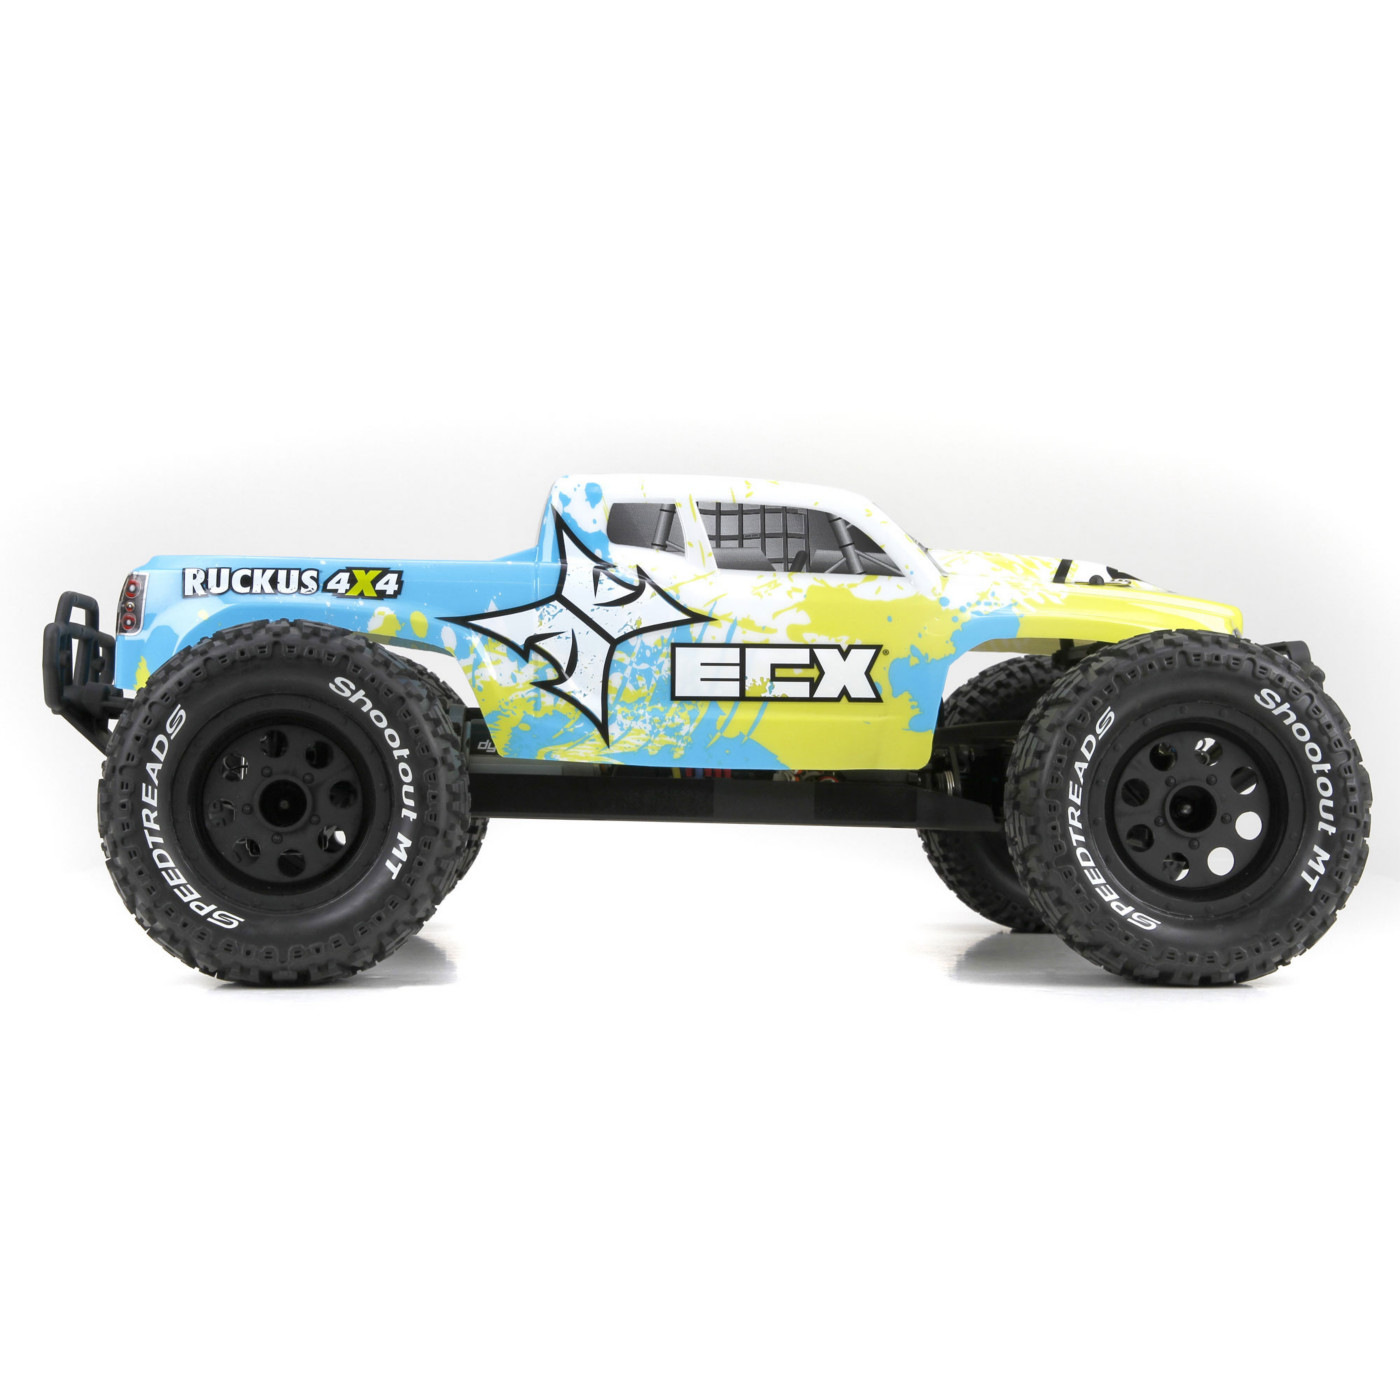 ECX 03042 1/10 Ruckus 4wd Monster Truck Brushed: Ready-to-Run This is an ECX 03042 1/10 Ruckus 4wd Monster Truck Brushed: Ready-to-Run. This version of the ECX® Ruckus® Monster Truck comes ready to assert total RC dominance with a ruthless 4WD platform and massive monster truck design. Building upon its reputation as the biggest basher in the ECX lineup, the 4WD Ruckus comes equipped with a massive 4WD drivetrain and sealed differentials. Best of all the electronics on the 4WD Ruckus come pre-installed and have been assembled on a durable nylon composite chassis powered by a high torque 550 sized 15-T motor. The Ruckus comes ready-to-run with a LiPo ready ESC that helps maximize the ruthless potential of this monster truck. Beyond being a highly capable basher, the 4WD Ruckus Monster Truck comes Ready-to-Run with a Spektrum™ DX2E 2.4 GHZ radio system and waterproof SR310 receiver for extended range and interference-free operation. Also included with the Ruckus are 4 AA batteries to power the DX2E as well as a 2400maH 7-cell battery and charger.Key Features:Completely ready-to-run with everything needed in one box4WD Drivetrain with sealed gear differentialsPre-installed potent 550 sized 15-T motor and LiPo (2S LiPo compatible) ready ESCSpektrum™ DX2E 2.4 GHz transmitter and SR310 waterproof receiverDynamite charger includedDynamite 2400mAh 7-cell battery includedESC and battery come pre-wired with high-current EC3™ connectorsWaterproof Dynamite servo and electronicsNylon composite chassis and parts material for extreme durabilityAdjustable oil filled shocks for precise handling in diverse conditionsAll-Terrain aggressive treaded tiresFully-painted and -decaled body out of the boxBeginner-friendly battery retaining systemReal ball bearings, enable higher speeds and a smoother-handling truckAVC™ (Active Vehicle Control™) Ready**Requires Spektrum SRS4210 AVC ReceiverCondition: Factory NewOperational Status: FunctionalThis item is brand new from the factory.Original Box